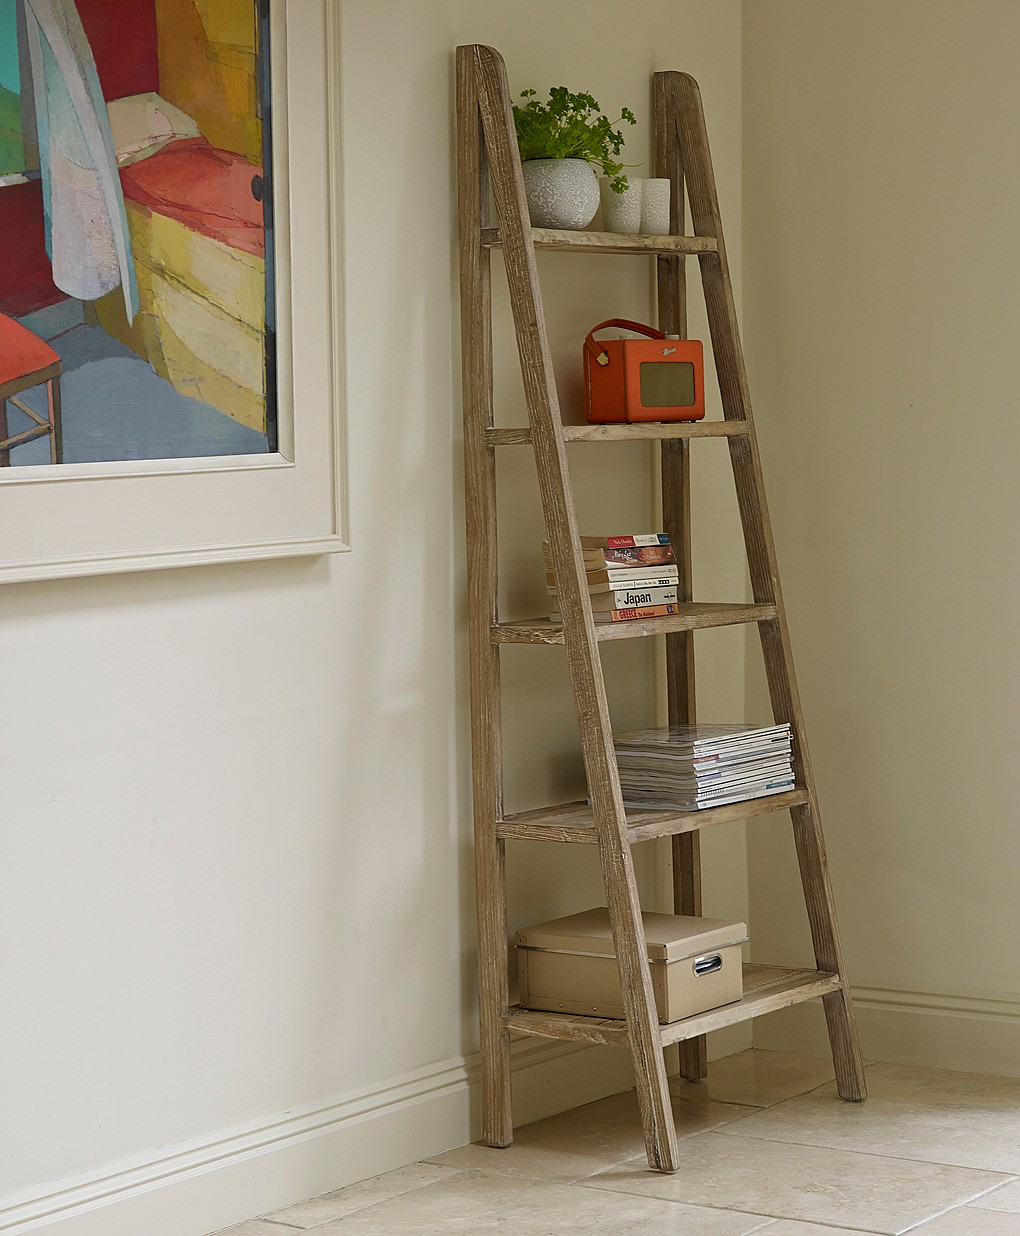 adorable ladder shelving unit made of woods plus 5 shelves beautified with  greeneries and book collection